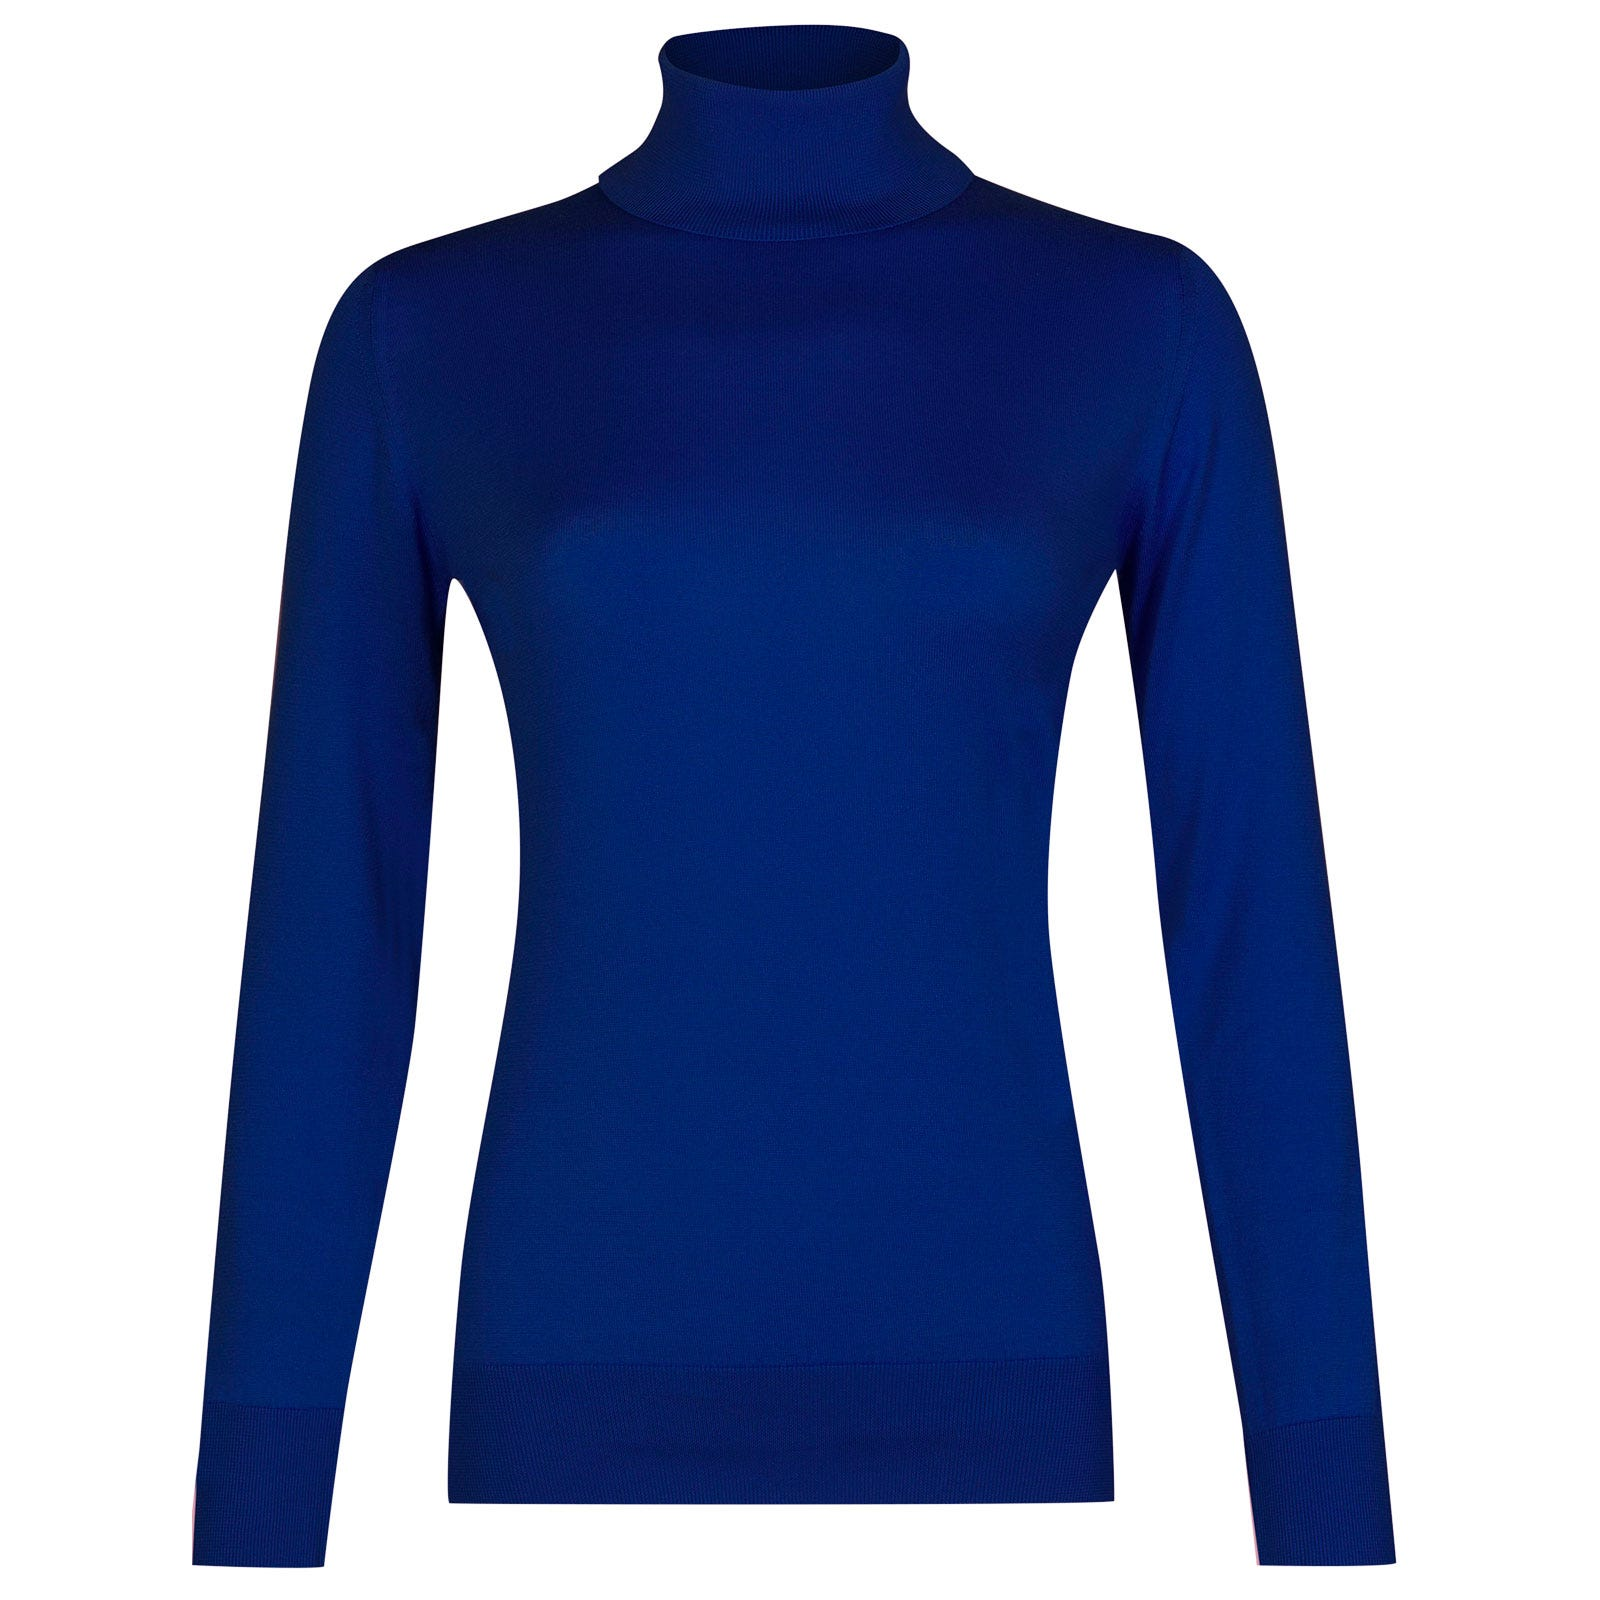 John Smedley pimlico Sea Island Cotton Sweater in Coniston Blue-M